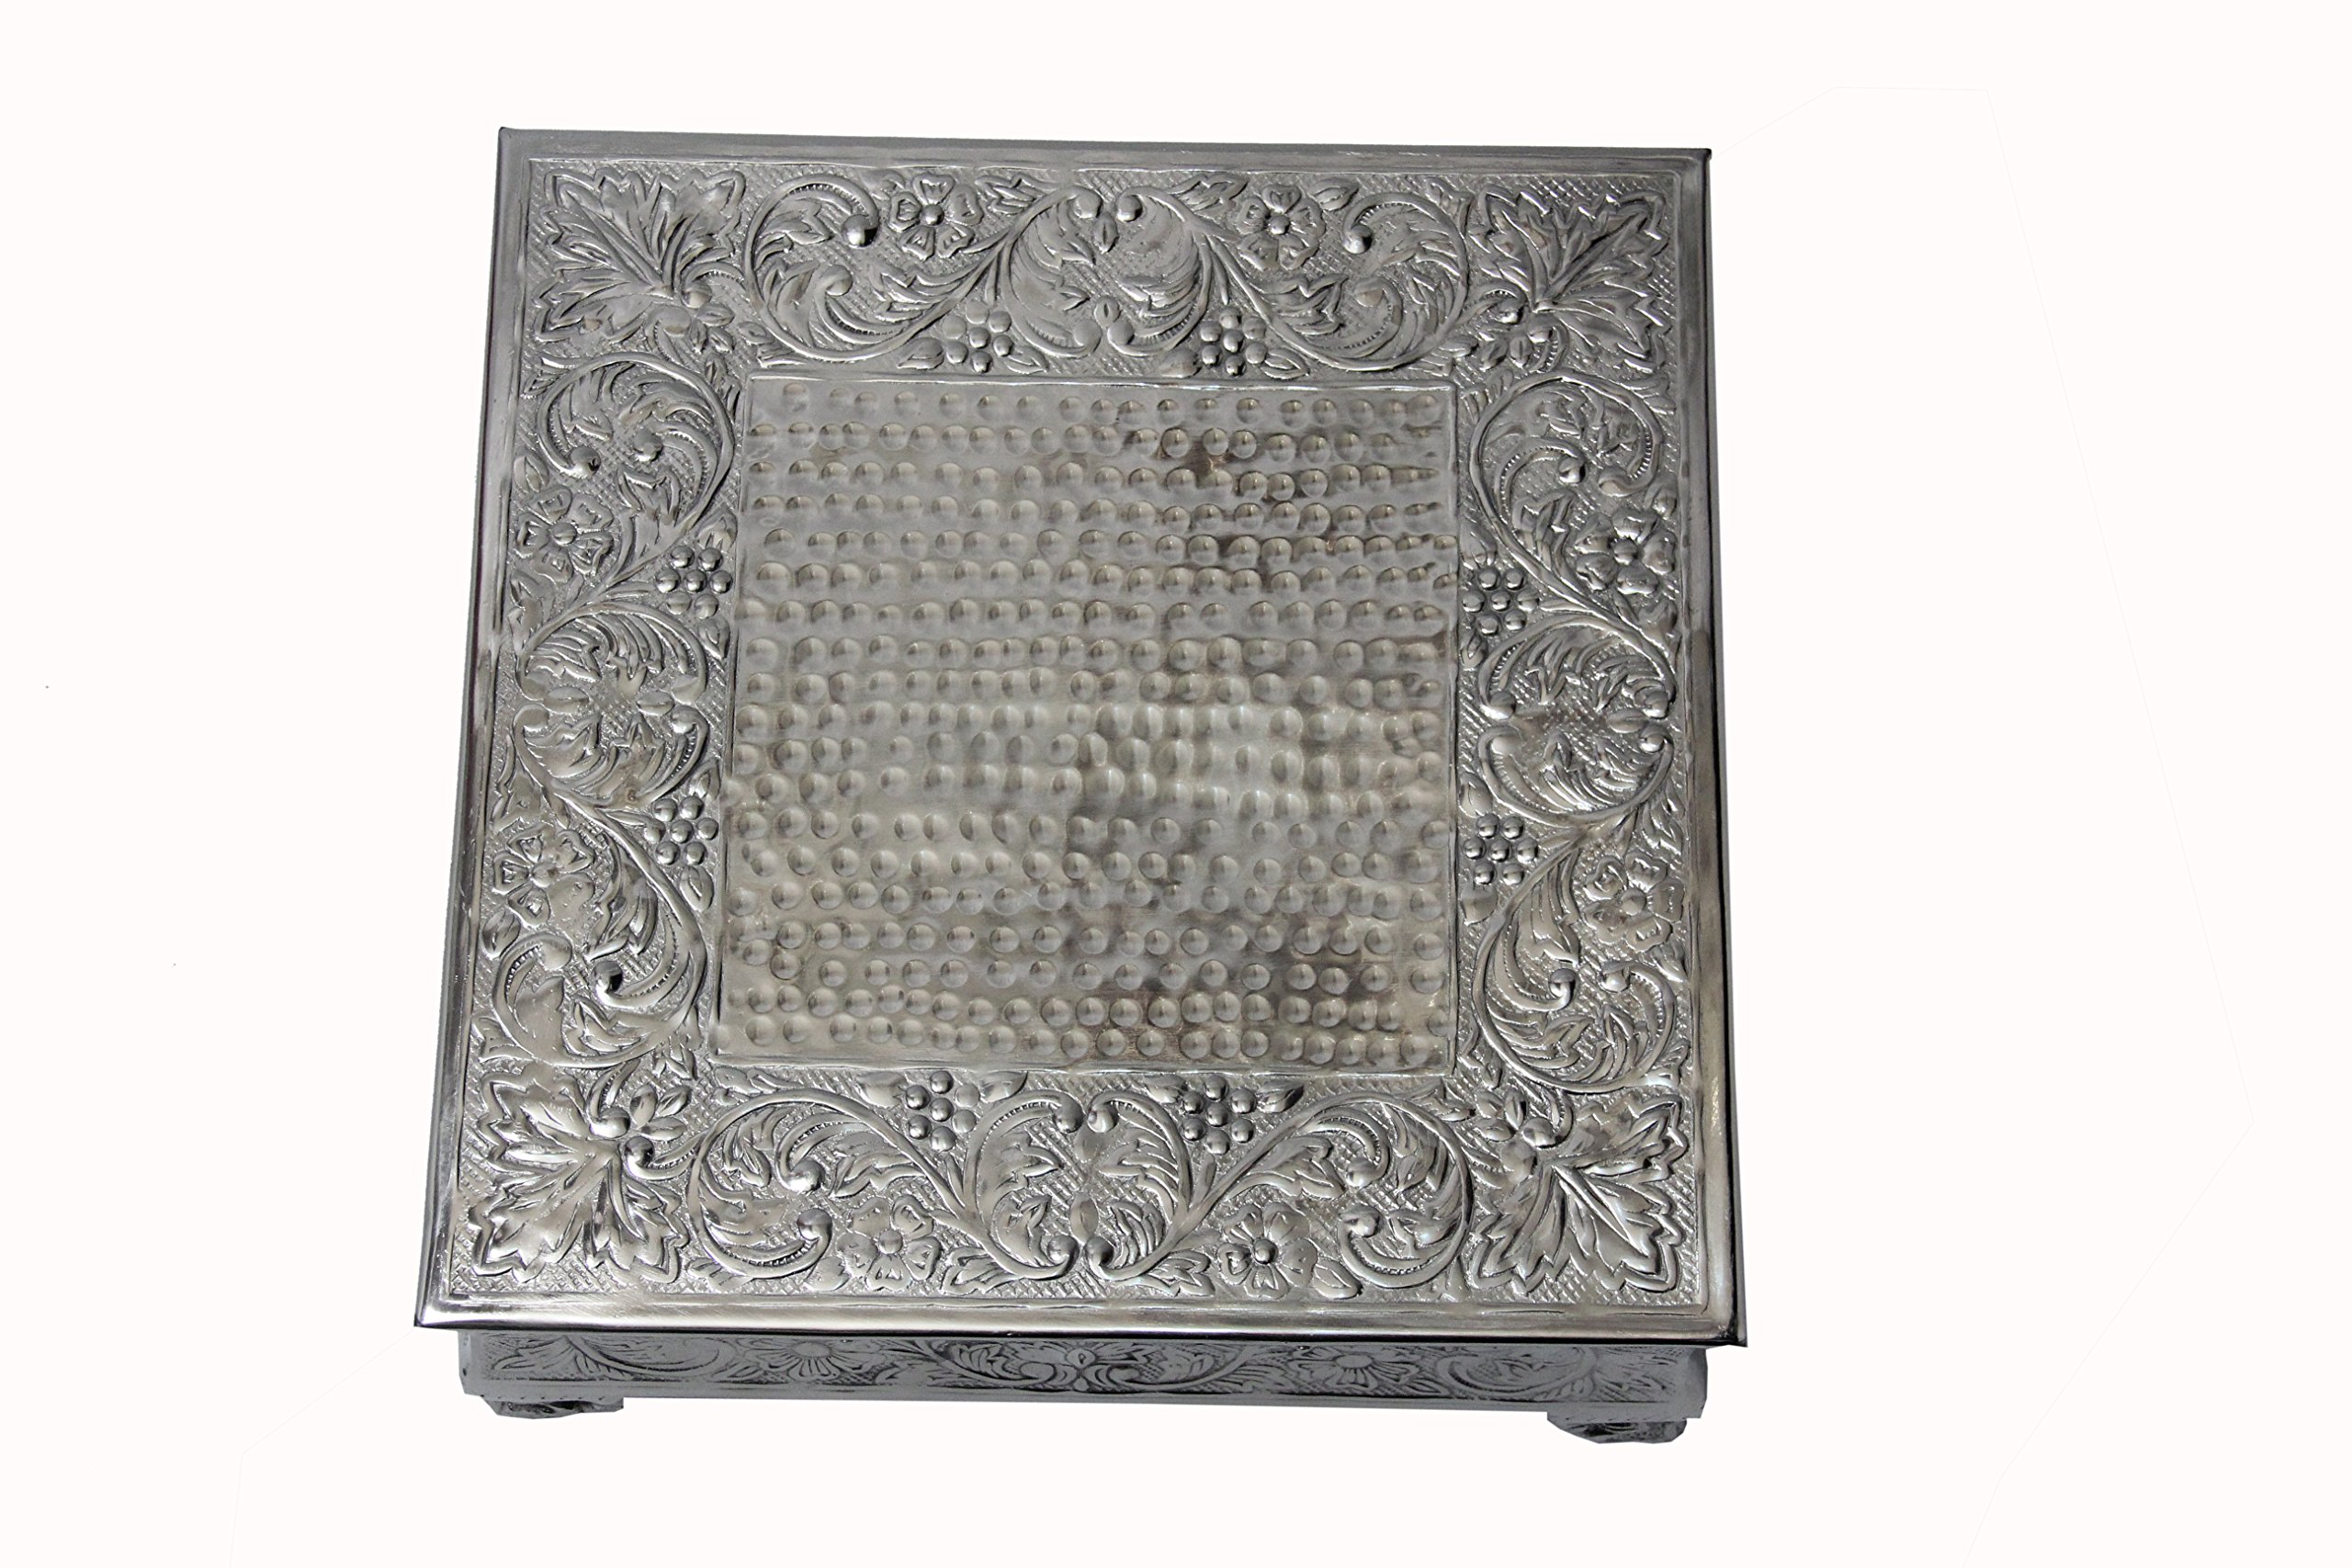 GiftBay Creations 751-22S Wedding Square Cake Stand, 22-Inch, Silver by GiftBay Creations (Image #6)